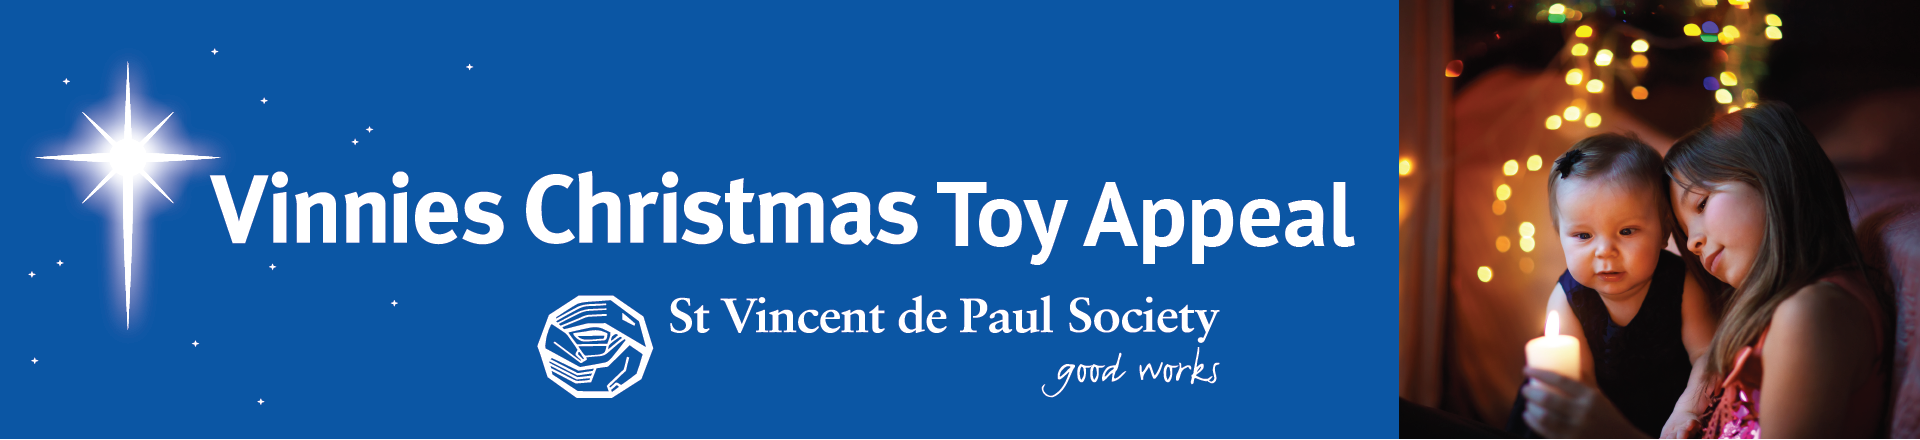 - Vinnies Christmas Gift Appeal - QLD